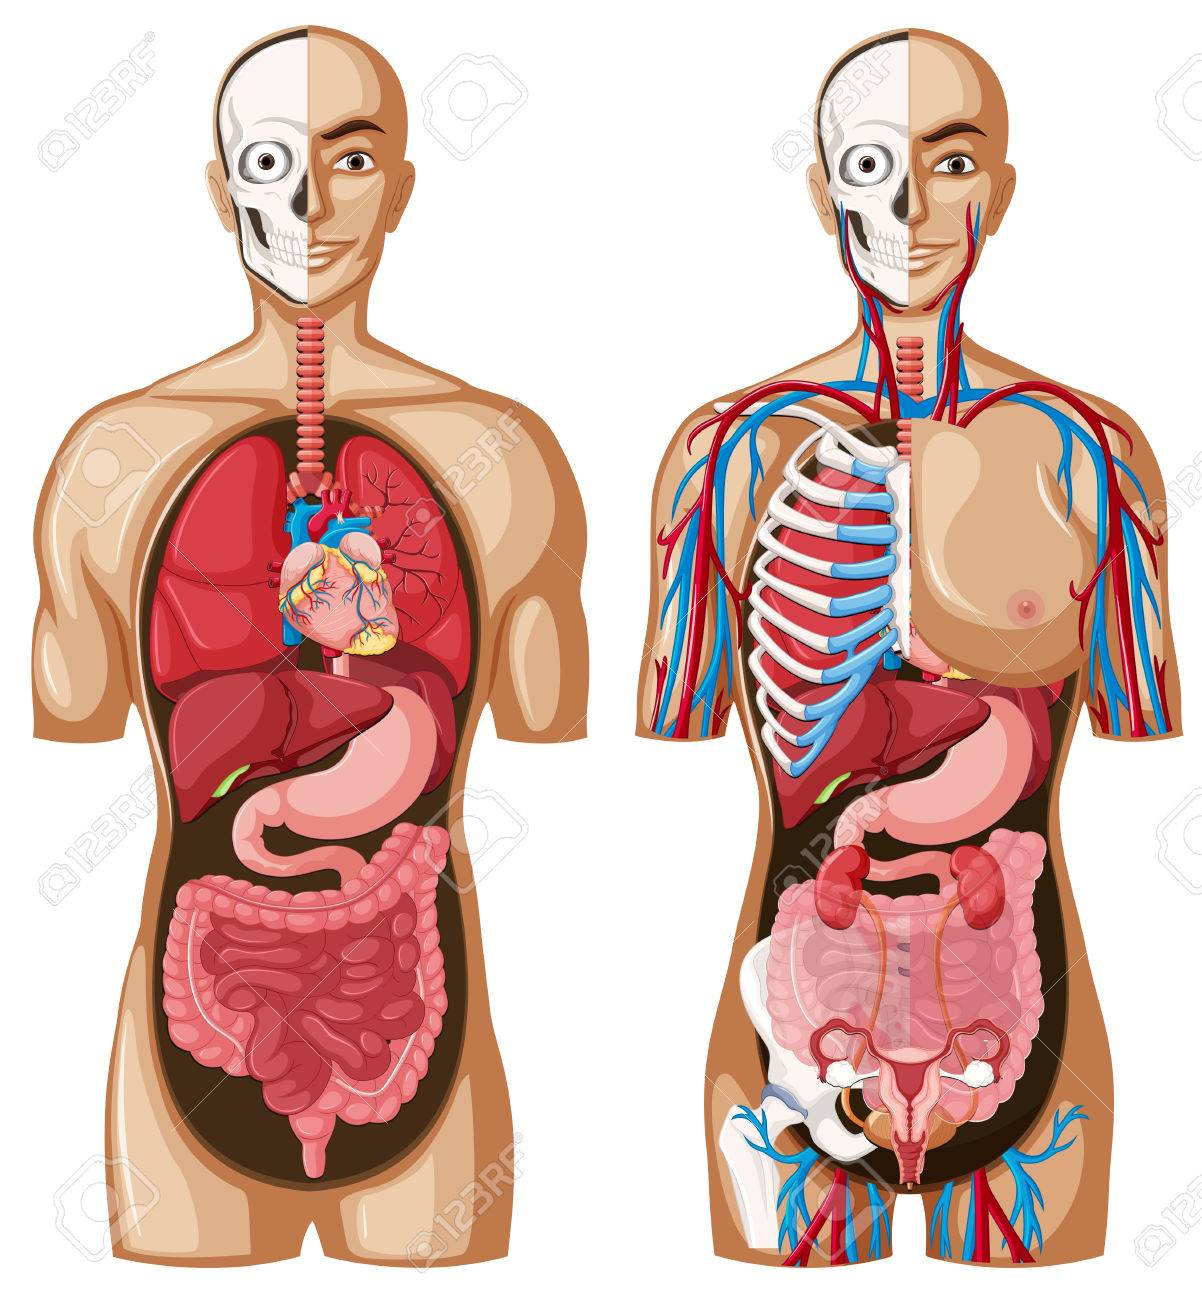 Human Anatomy Model With Different Systems Illustration Royalty Free